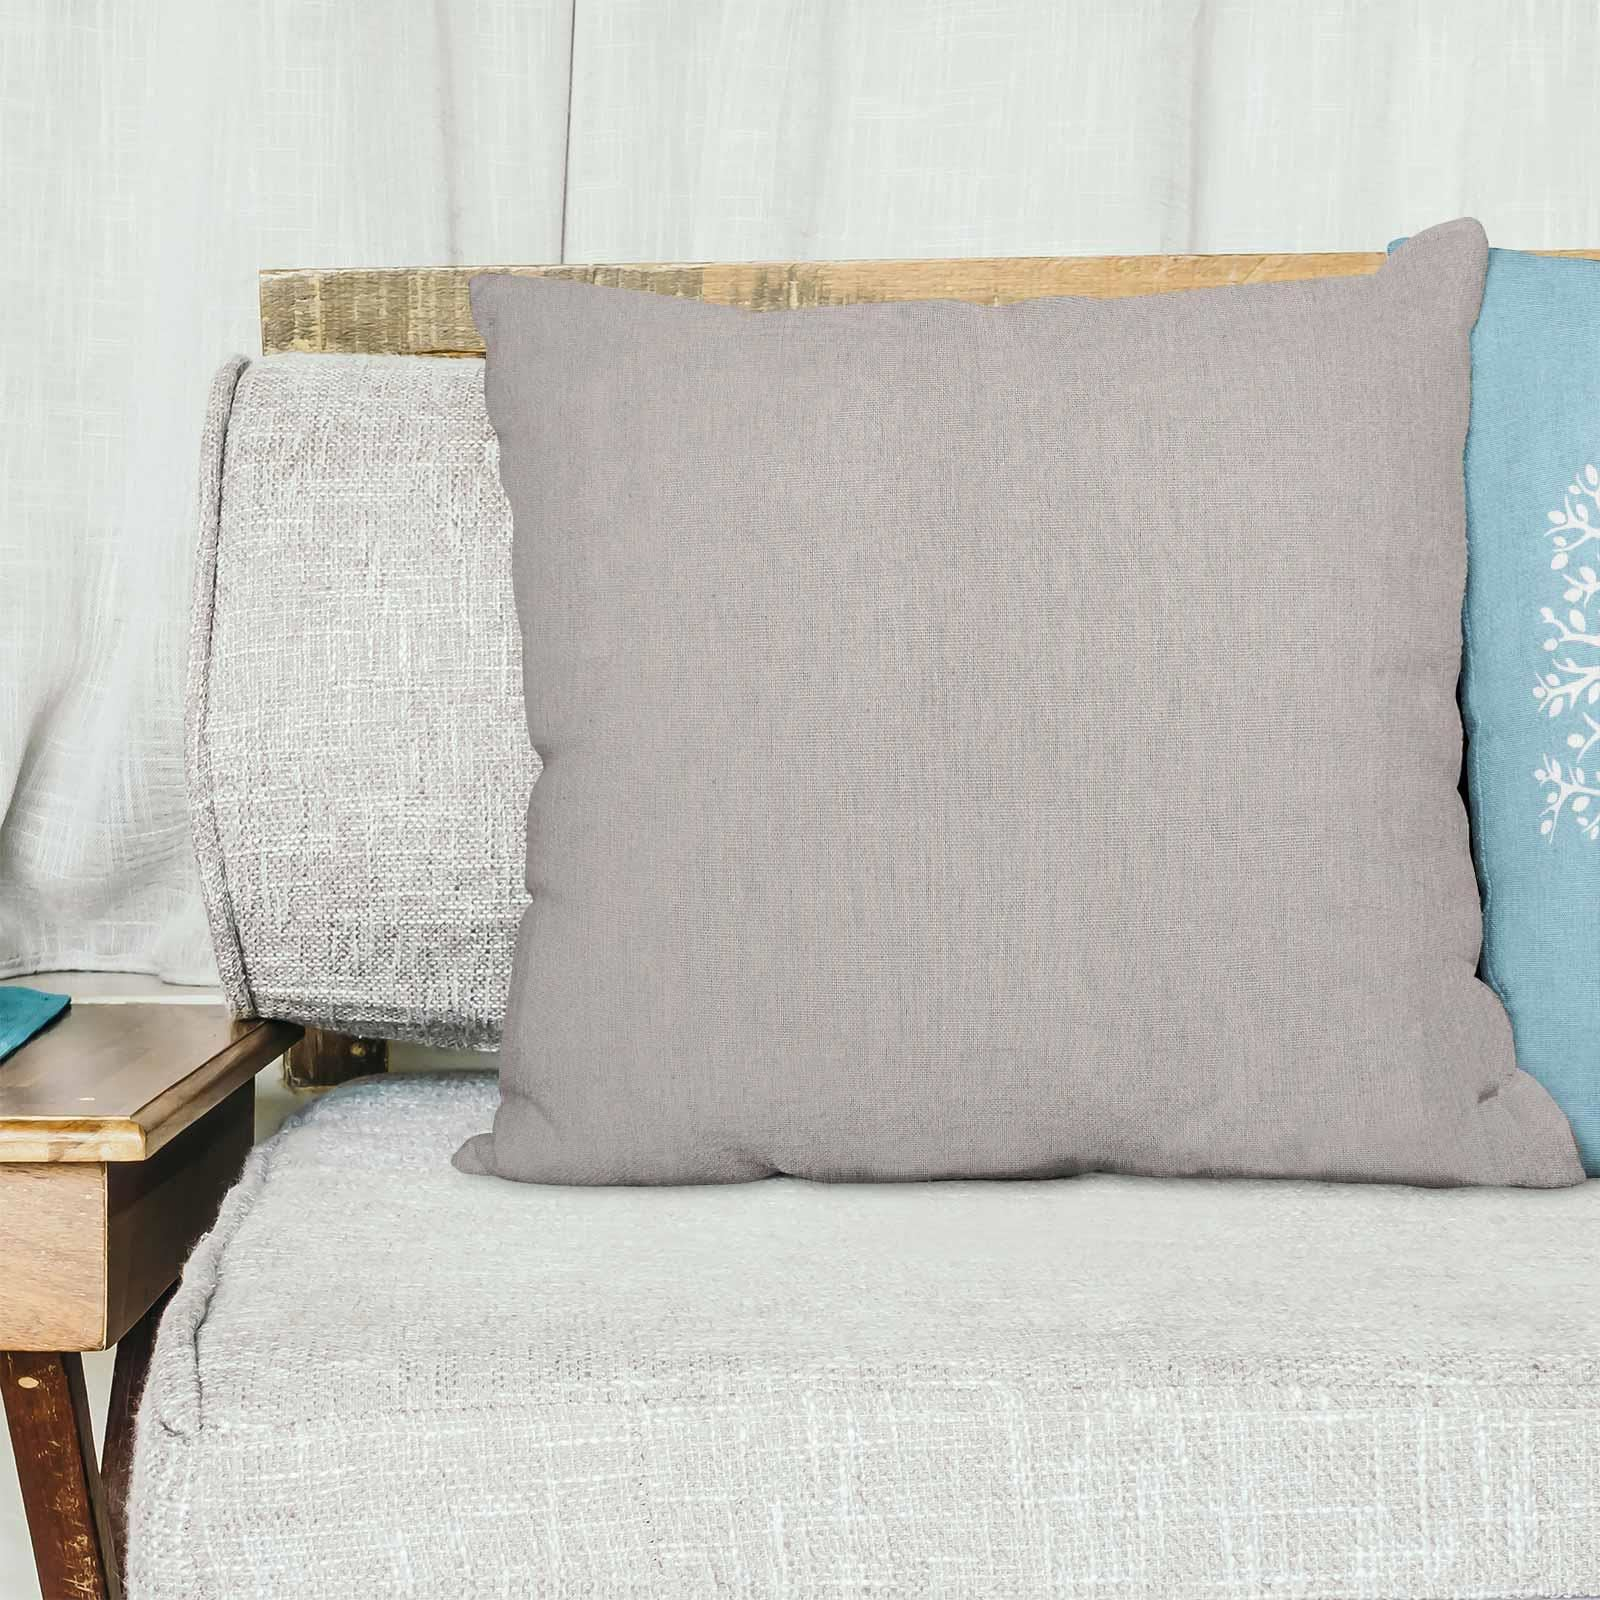 Grey-Ochre-Mustard-Cushion-Cover-Collection-17-034-18-034-Covers-Filled-Cushions thumbnail 67